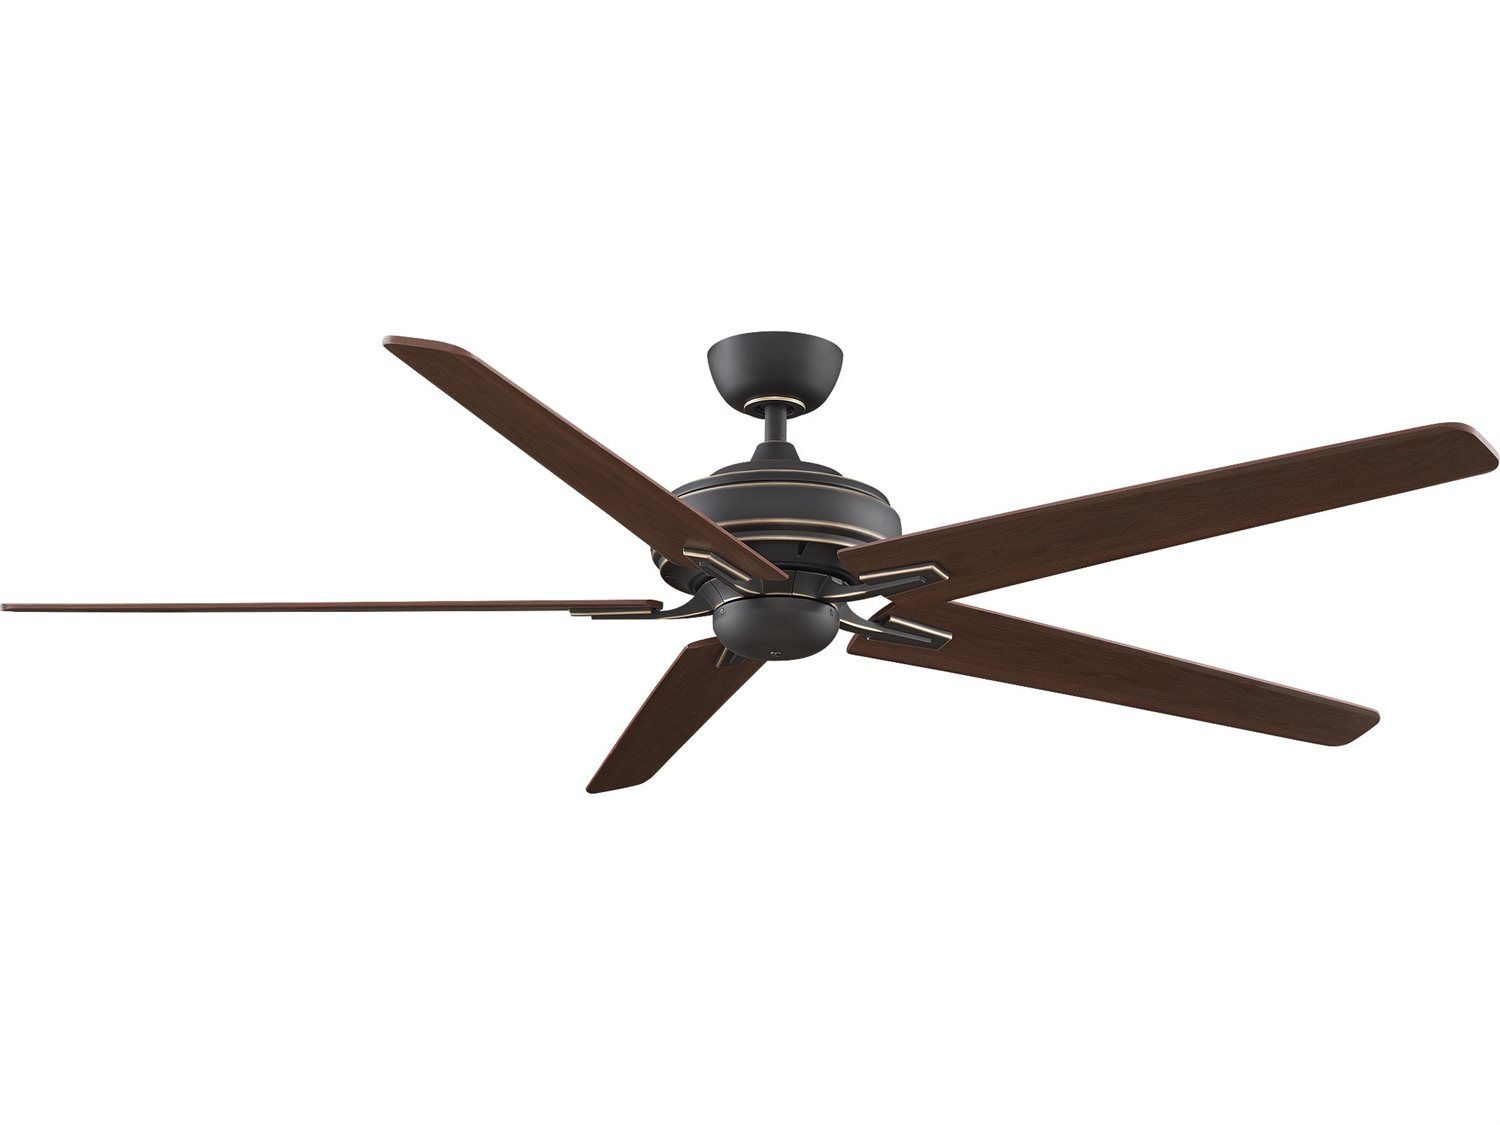 Luxury Home Decor Shopping For Indoor Outdoor Ceiling Fans Without Lights Unique Ceiling Fans Bronze Ceiling Fan